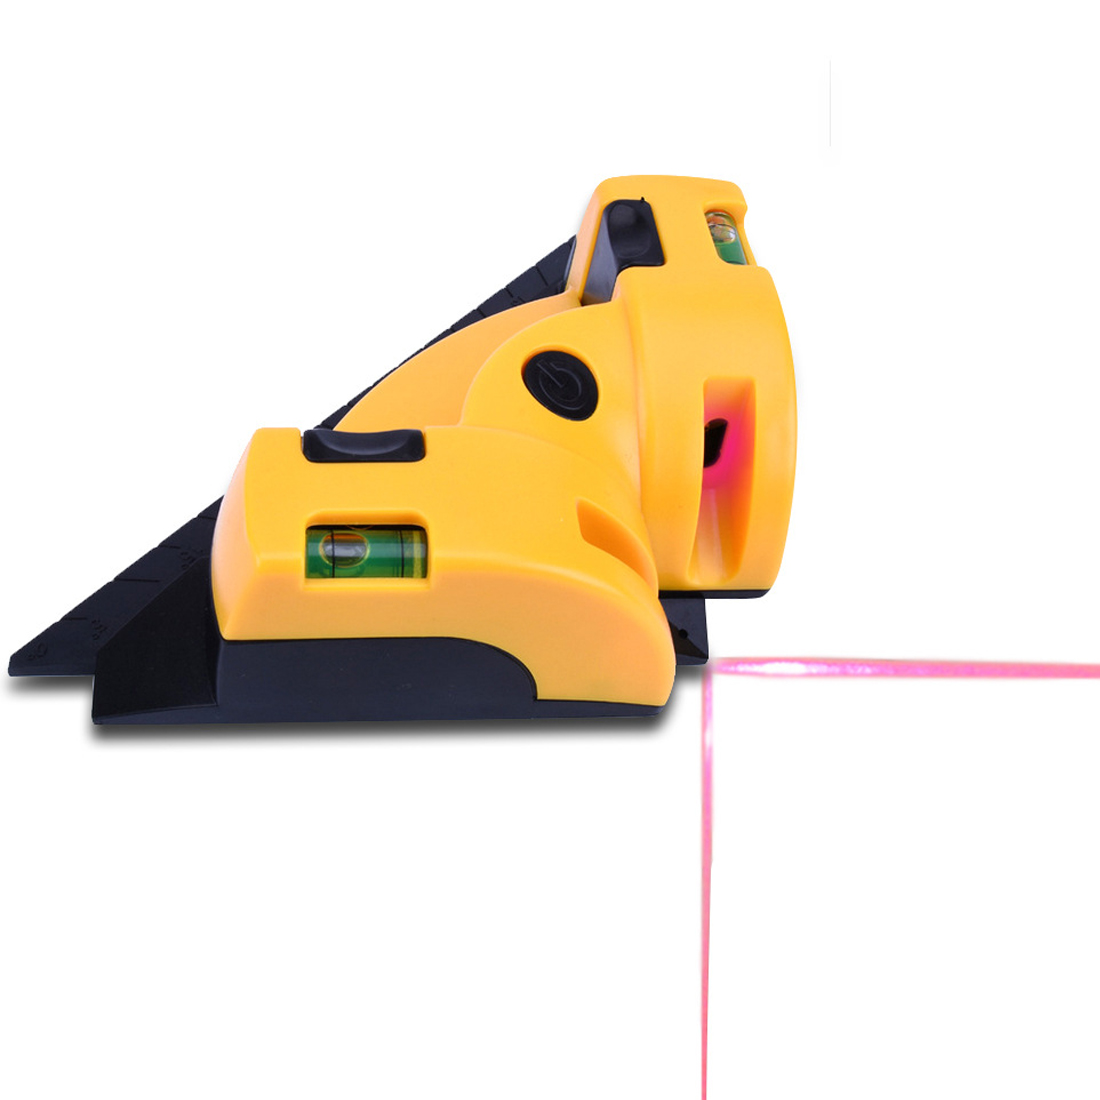 High Quality Right Angle 90 Degree Vertical Horizontal Laser Line Projection Square Level kapro laser level 90 degree rectangular angle ruler investment instrument laser line length up to 20 meters